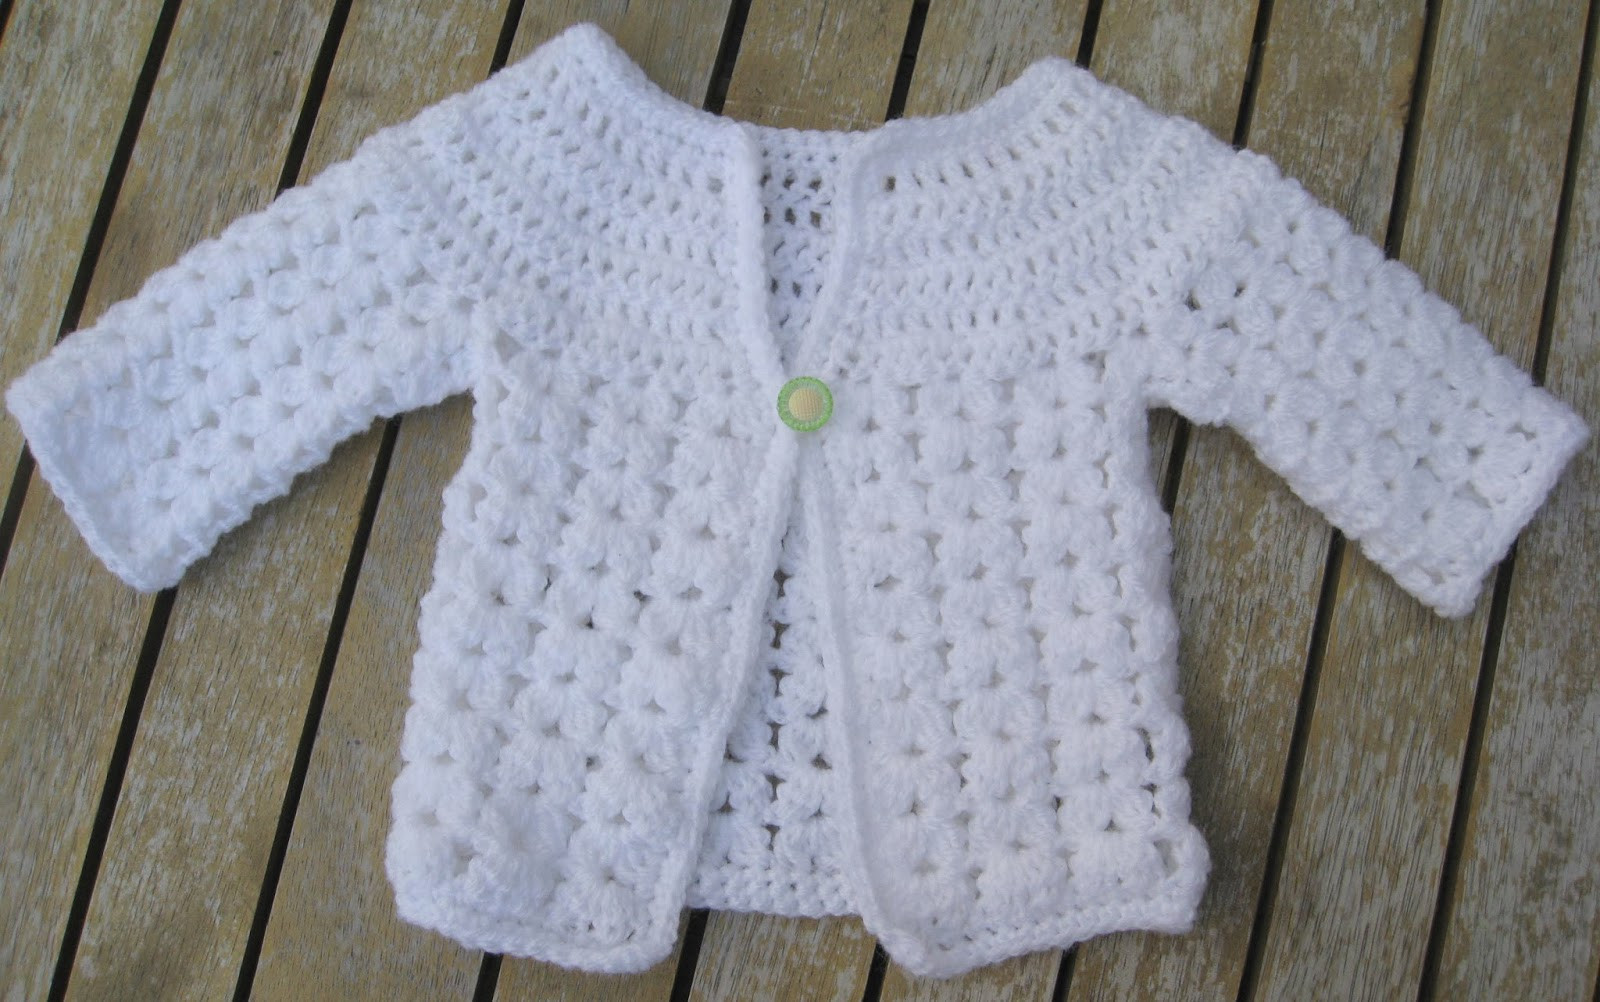 Crochet Baby Cardigan Pattern Best Of Crochet Baby Sweater Pattern Pdf Long Sweater Jacket Of Luxury 44 Pictures Crochet Baby Cardigan Pattern